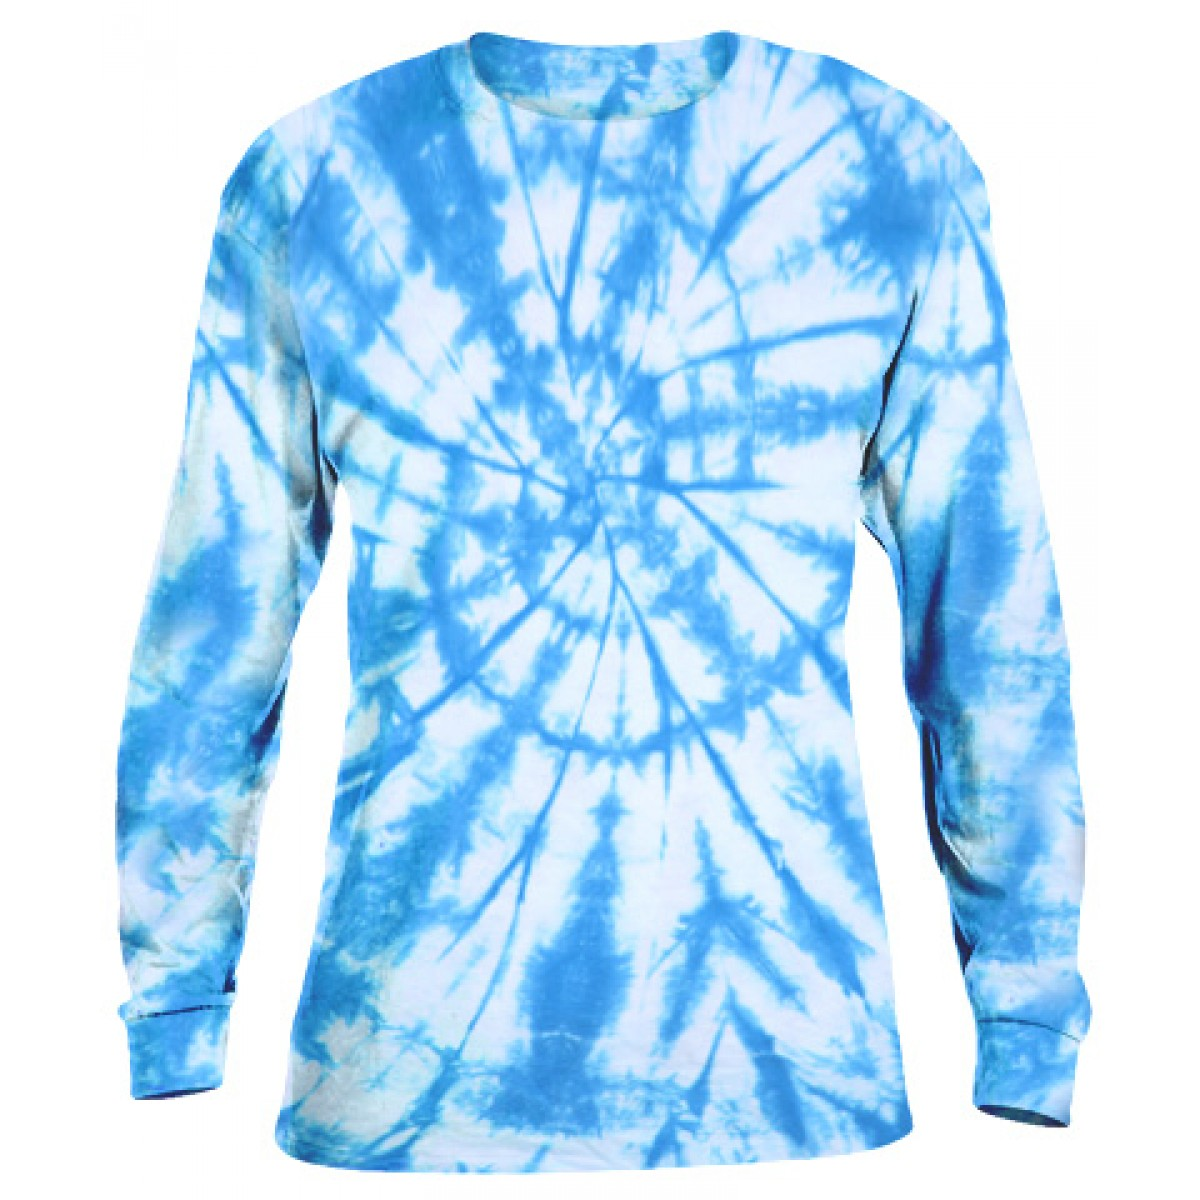 Tie-Dye Long Sleeve Shirt -Blue-XS